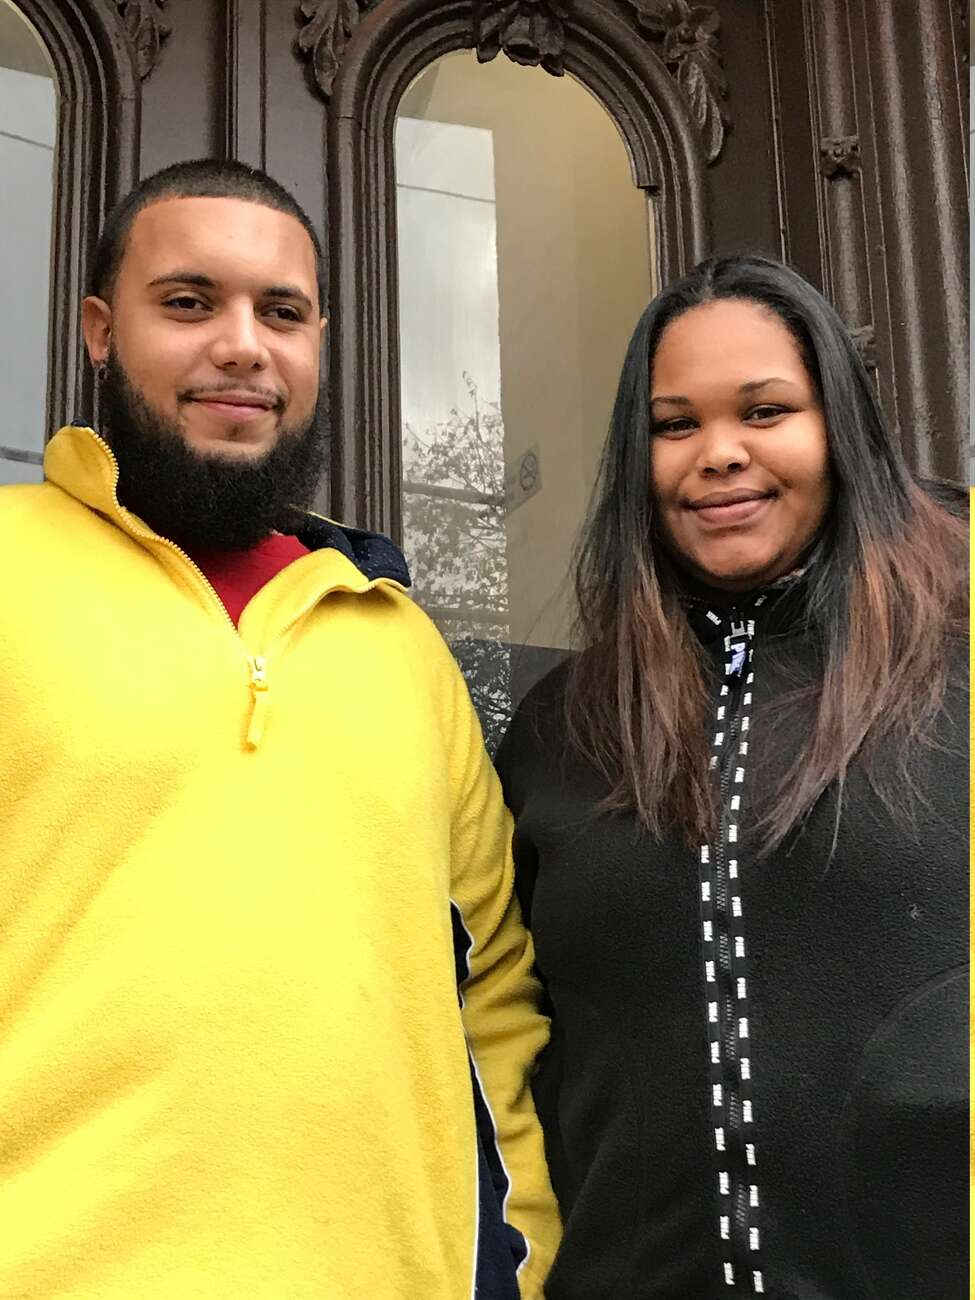 Isaac Espiritusanto and fiancé Jasmin Almonte were nearly evicted from their Albany apartment after they fell behind on rent, but eviction was averted with assistance from United Tenants of Albany and Albany County DSS.